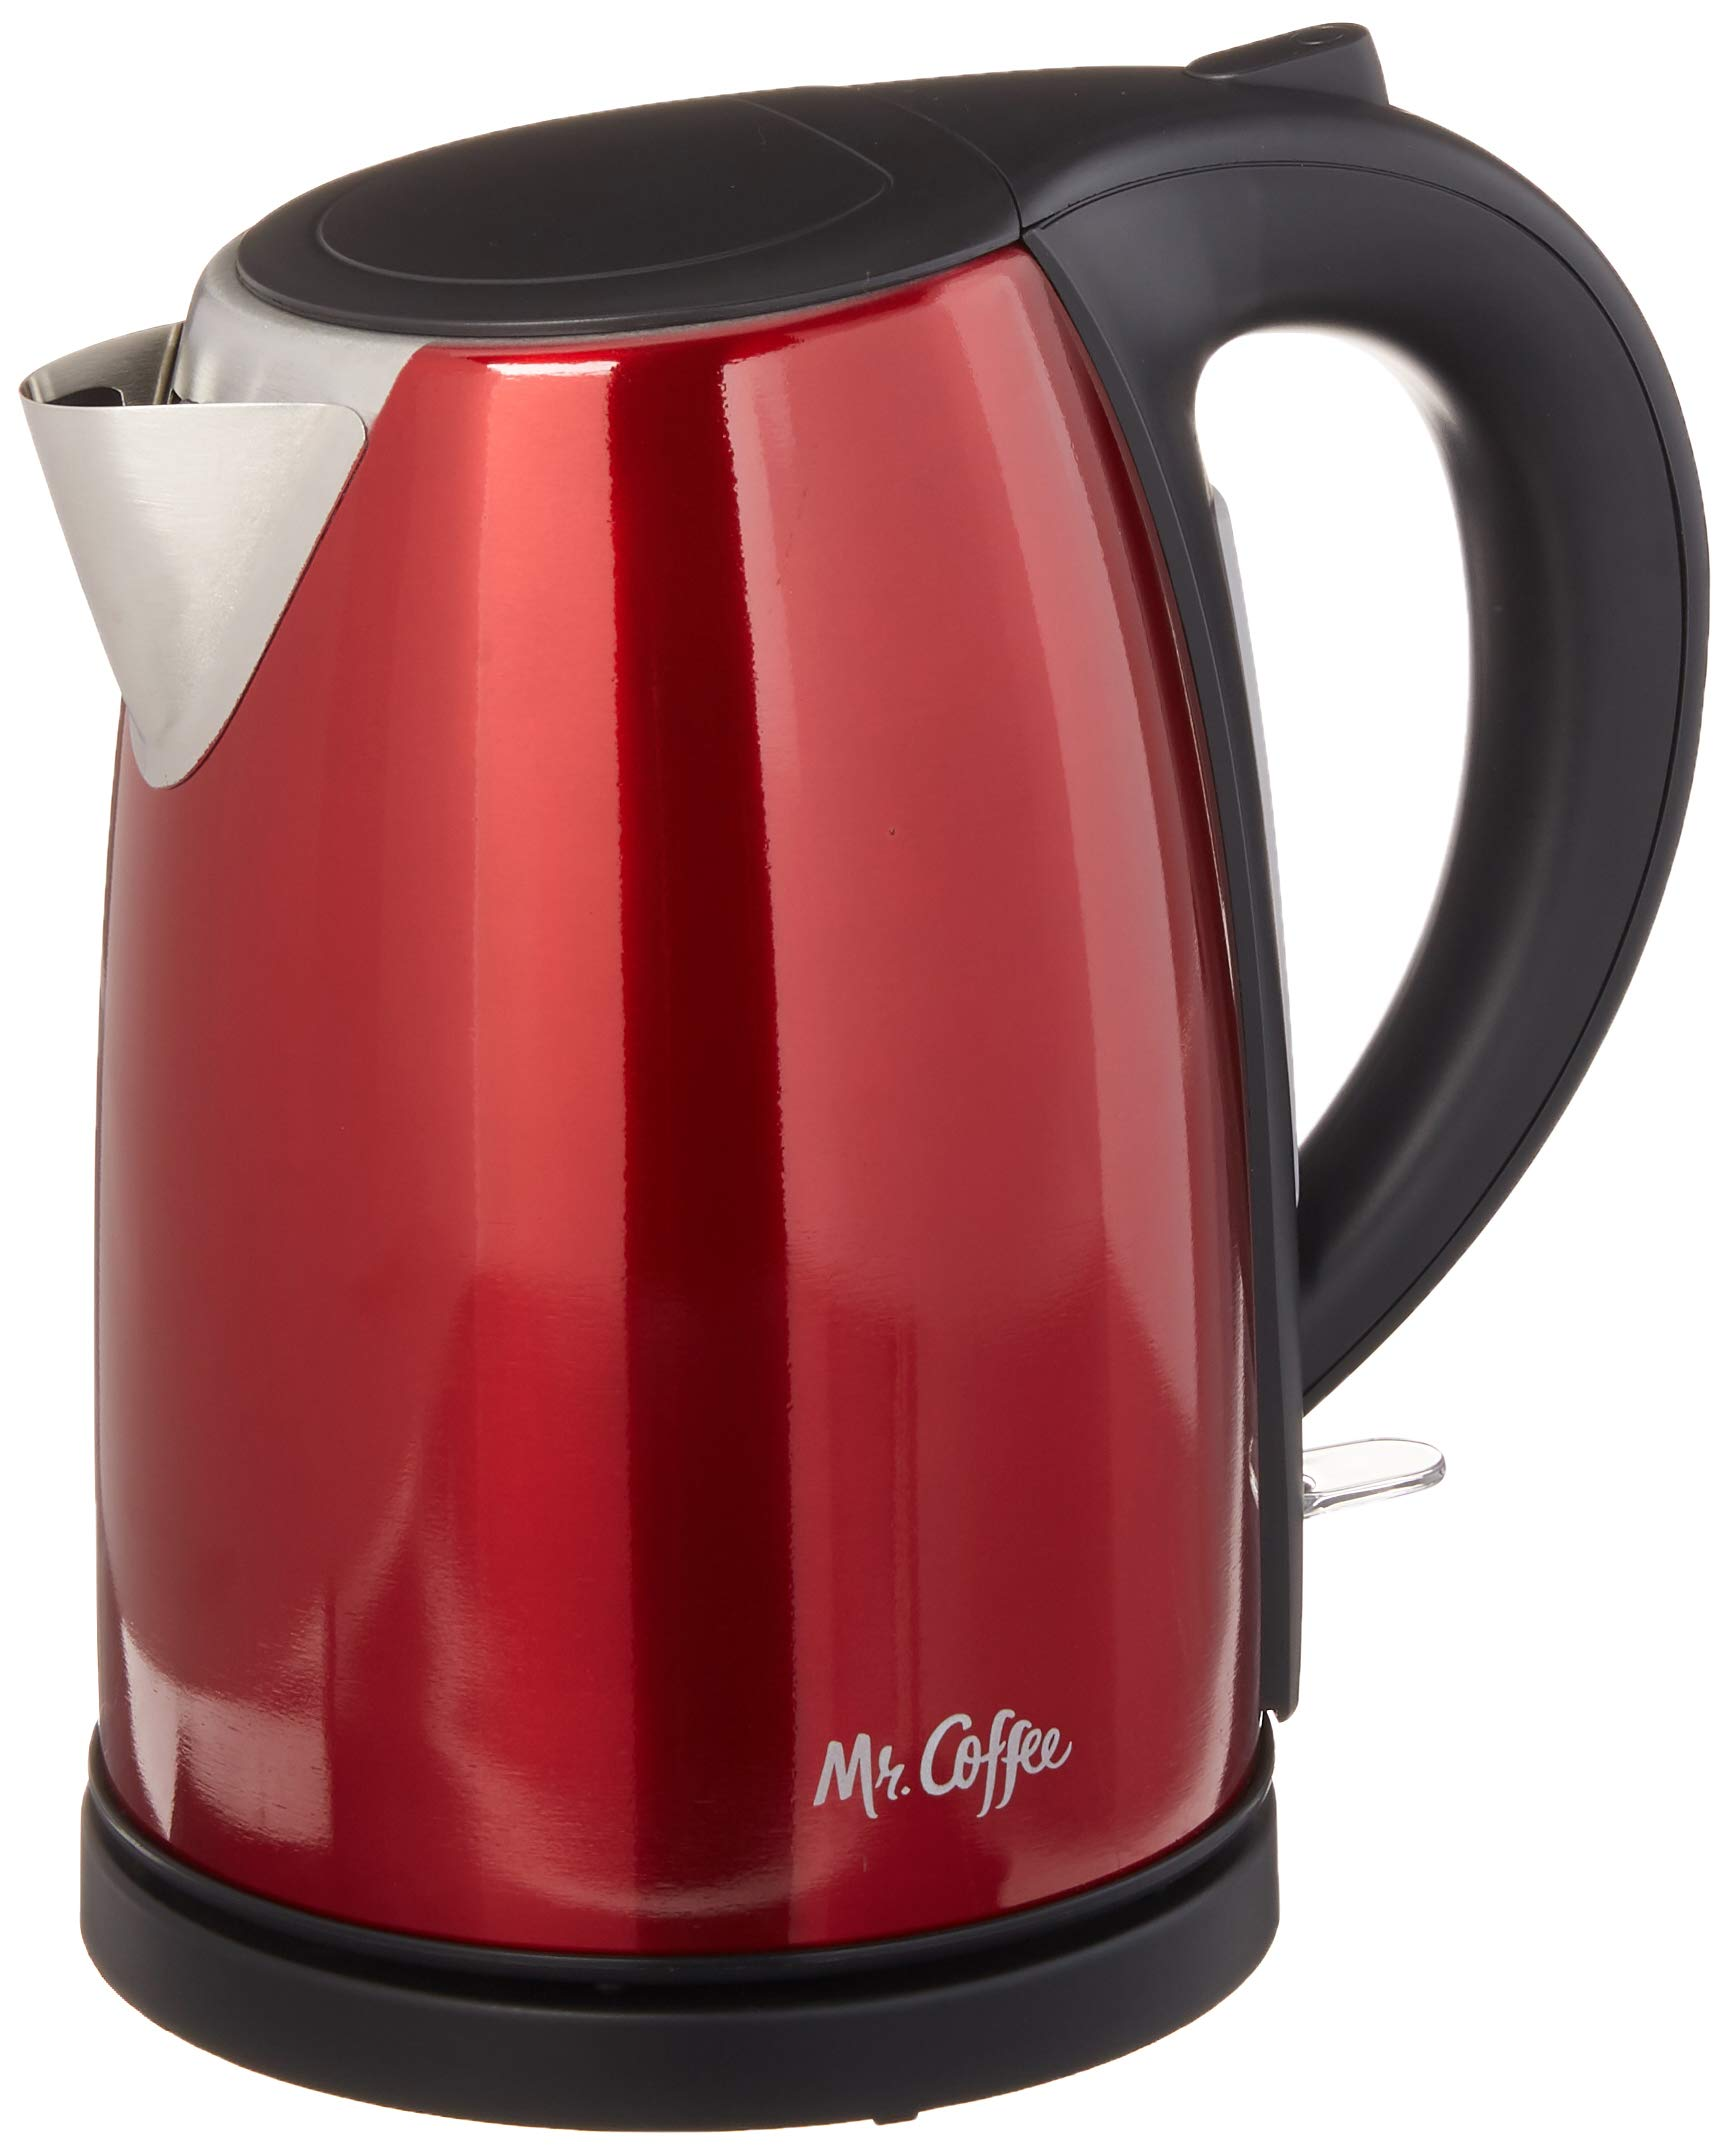 Mr. Coffee Stainless Steel Electric Kettle, Red by Mr. Coffee